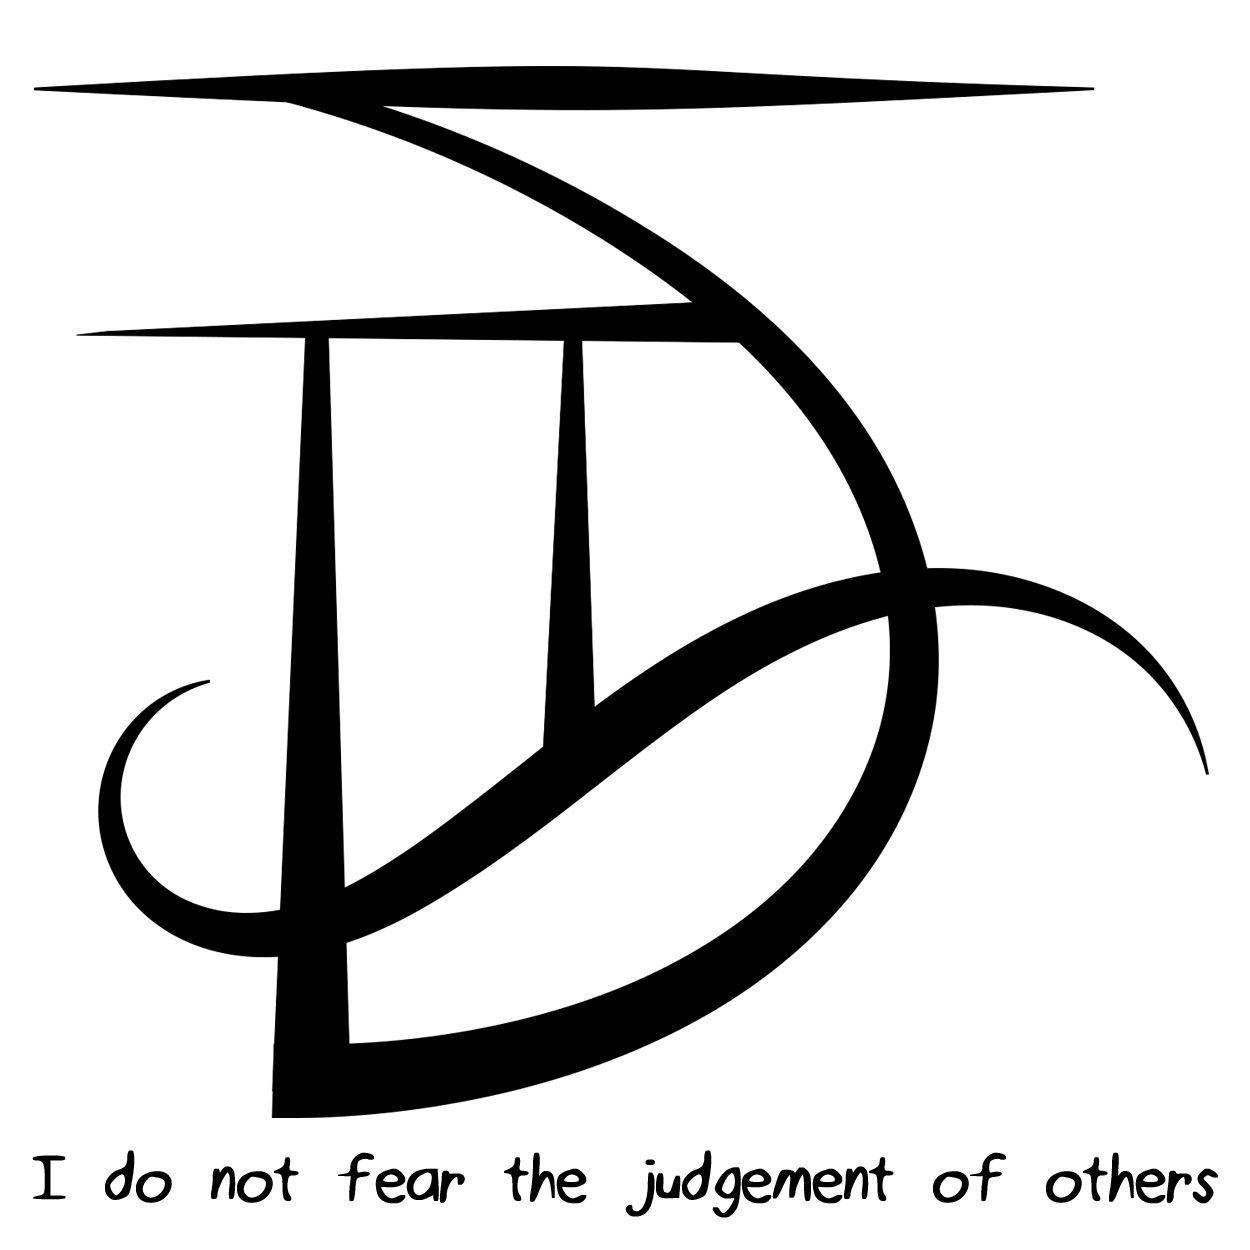 Sigil An Inscribed Or Painted Symbol Considered To Have